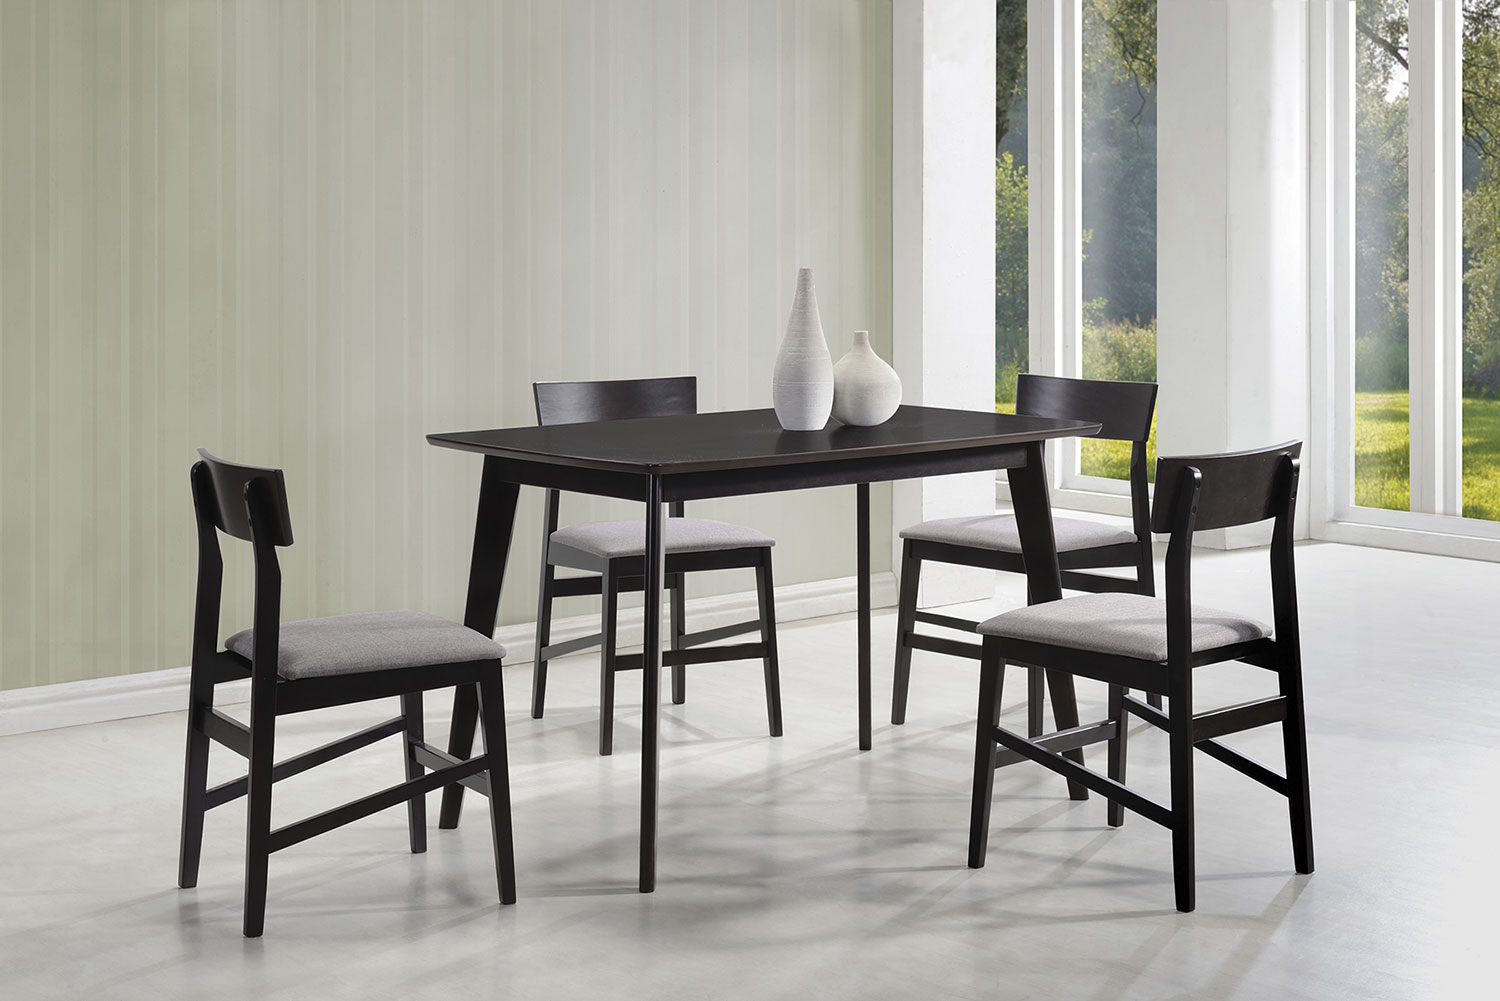 Coaster 150347 5 PC Dinette Set - Warm Grey